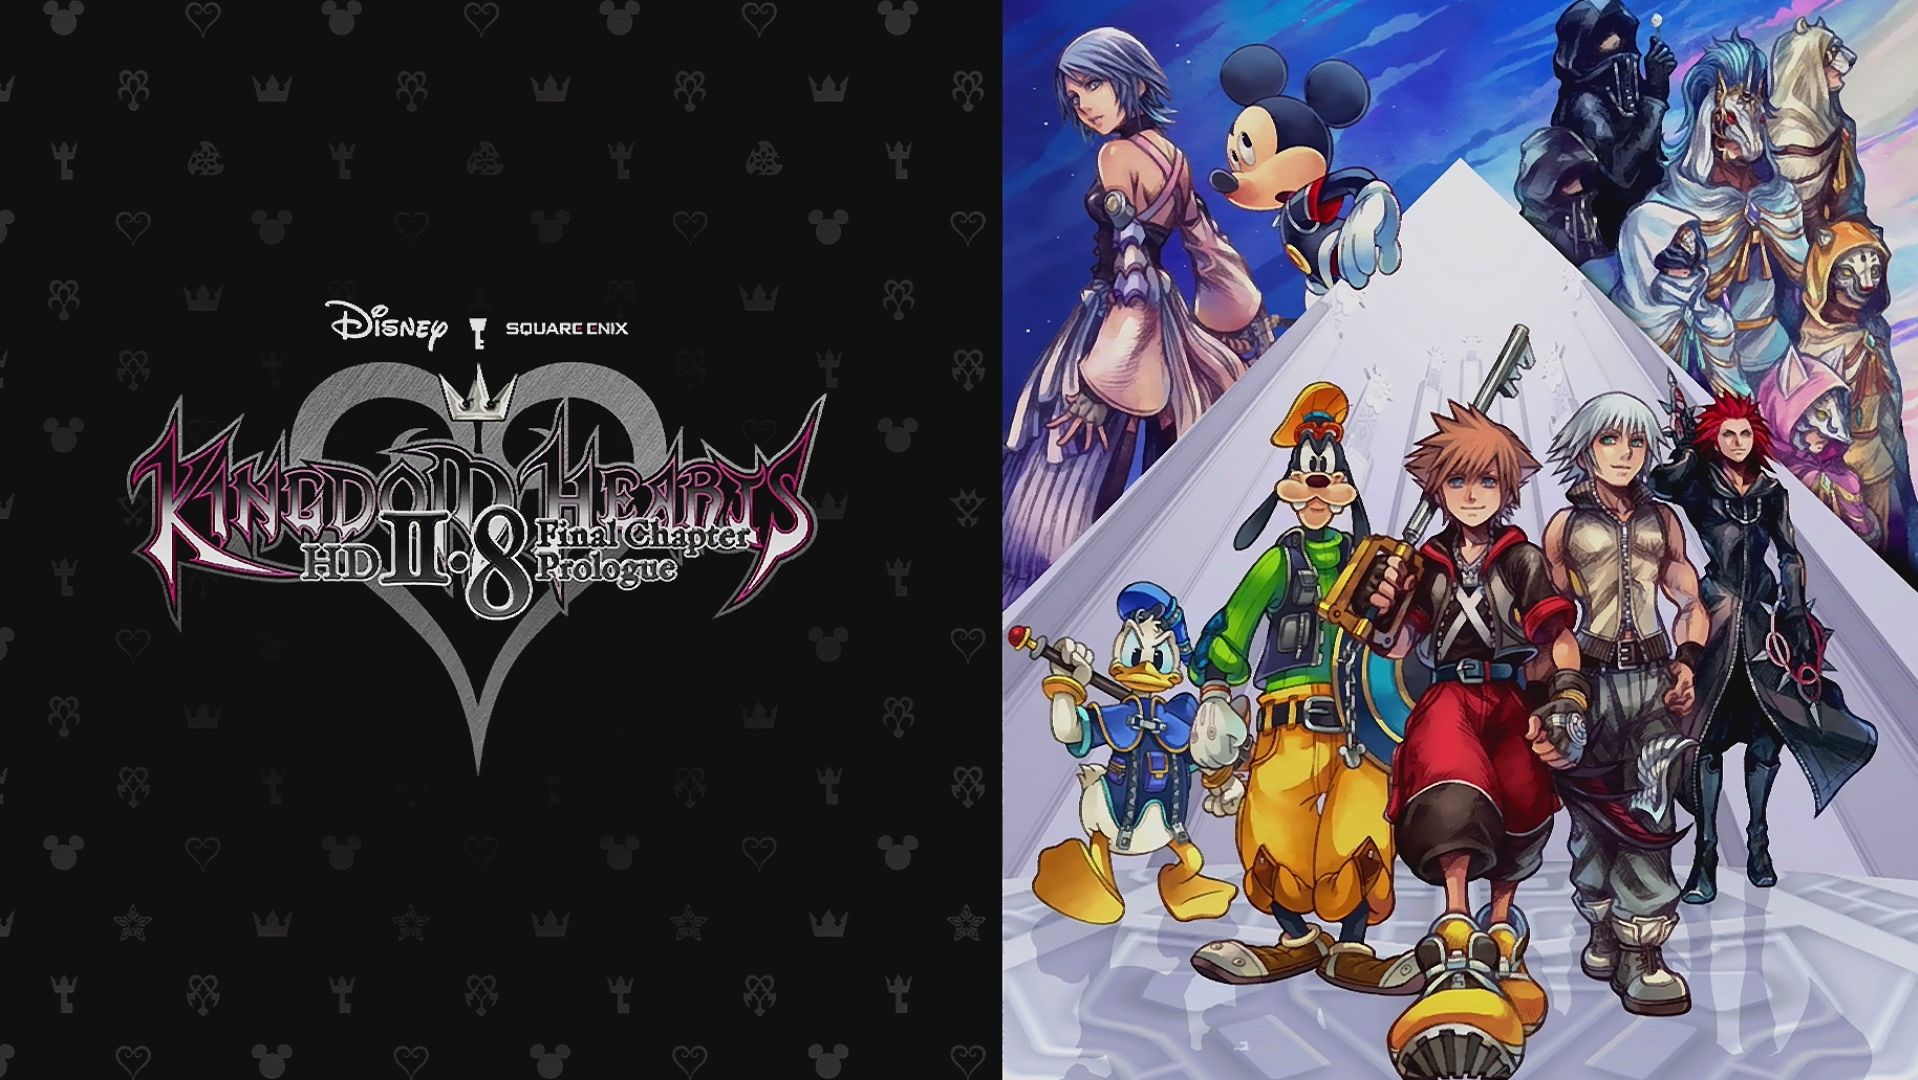 Kingdom Hearts II.8 HD Final Chapter Prologue